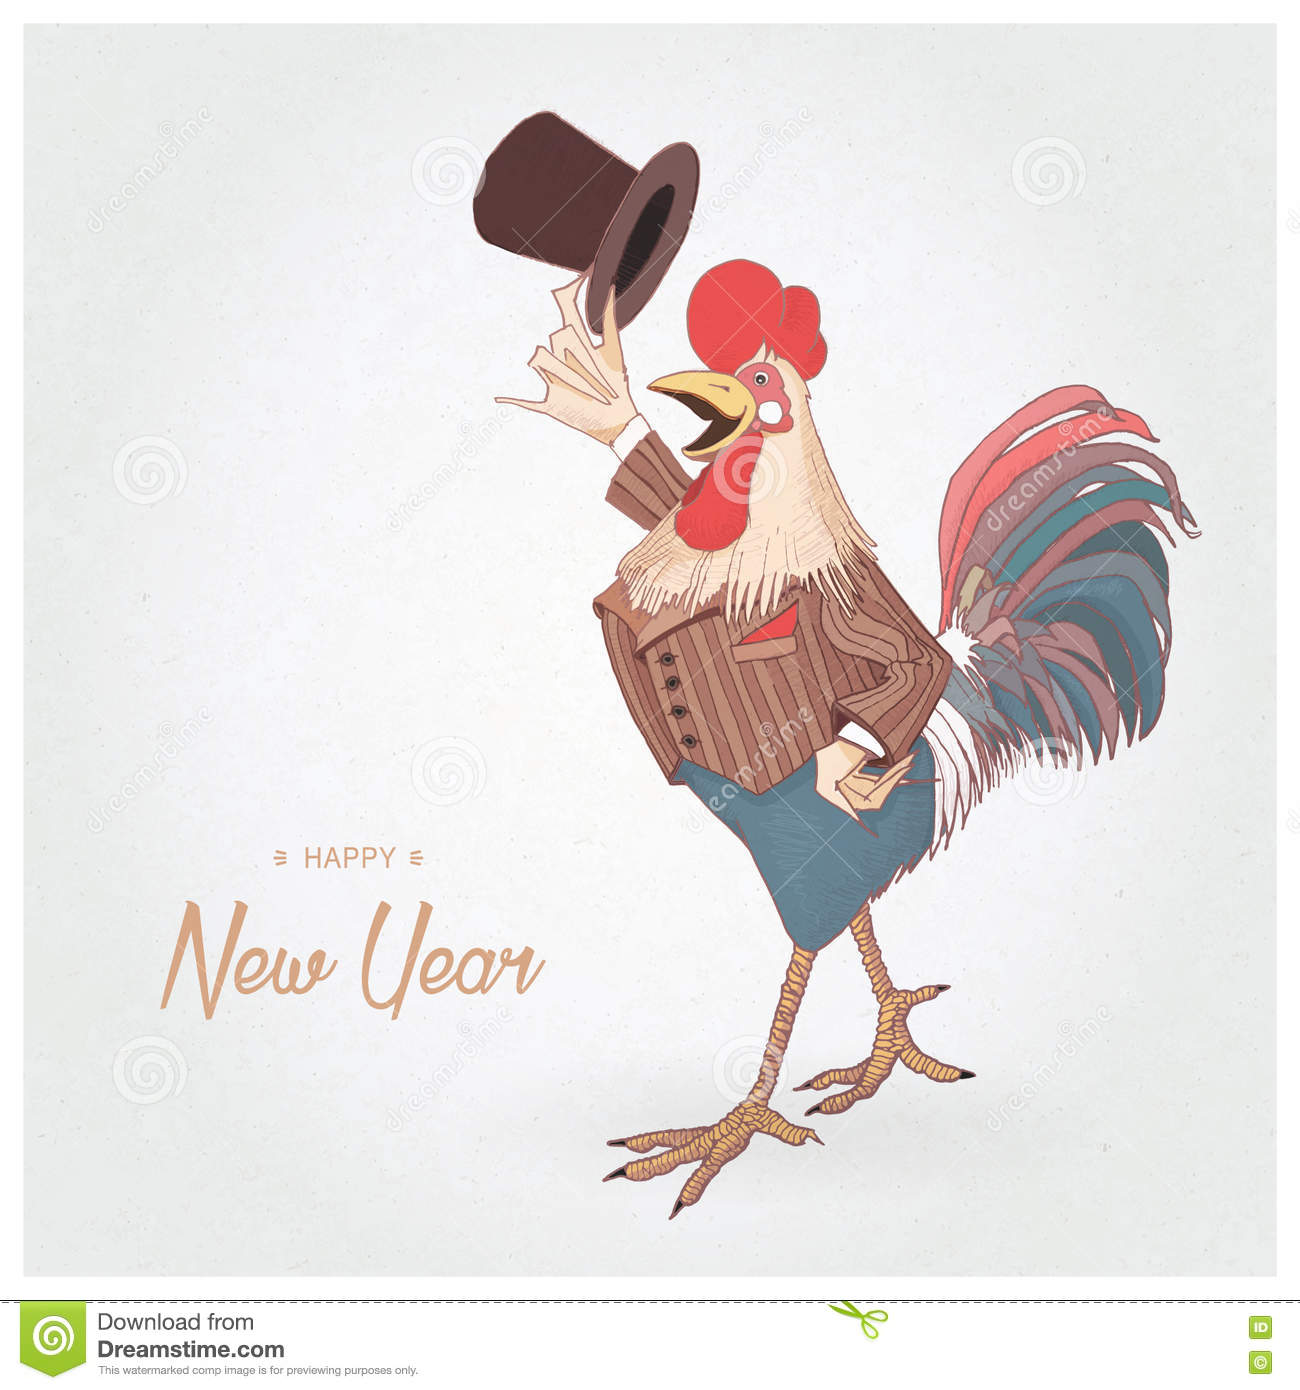 chinese new year of the rooster happy new year greeting card new year background sample textchristmas tree toy decoration white background